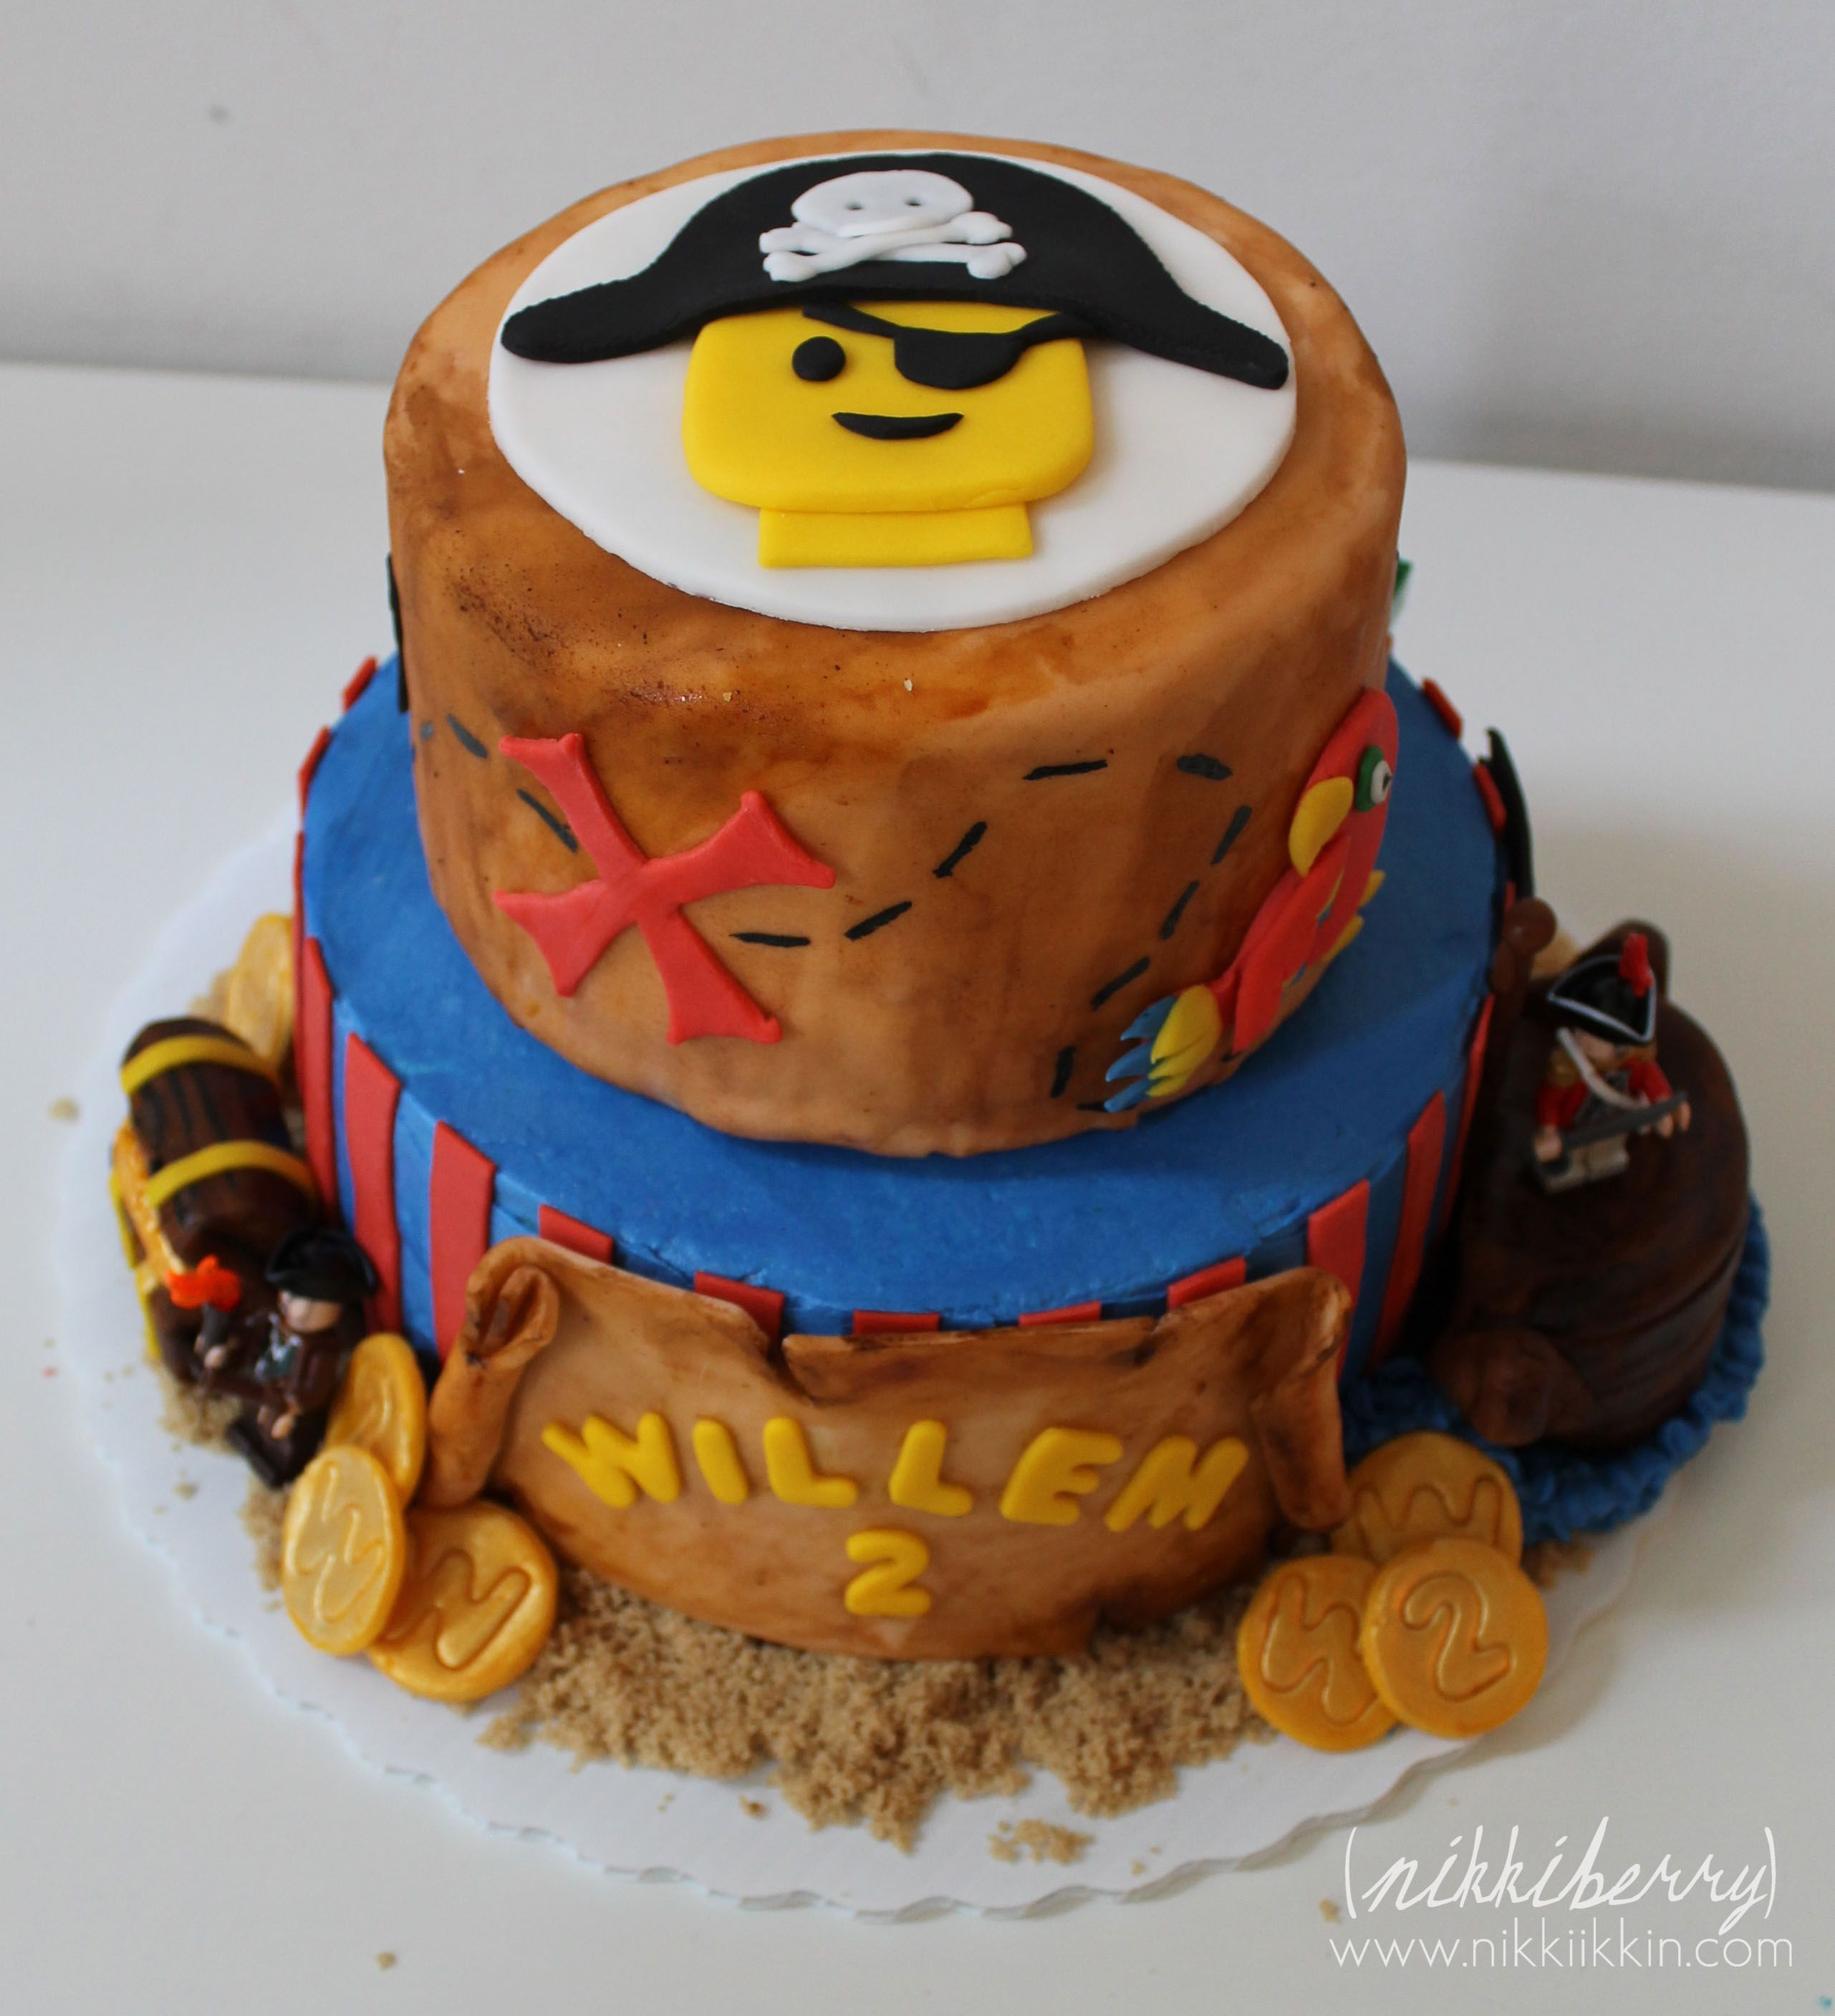 Cake ideas on pinterest pirate cakes marshmallow fondant and - I Have Held This Cake Post Hostage For 5 Months Im Not Sure Why I Have Taken So Long To Post It Its One Of My Favorite Cakes Ever This Lego Pirate